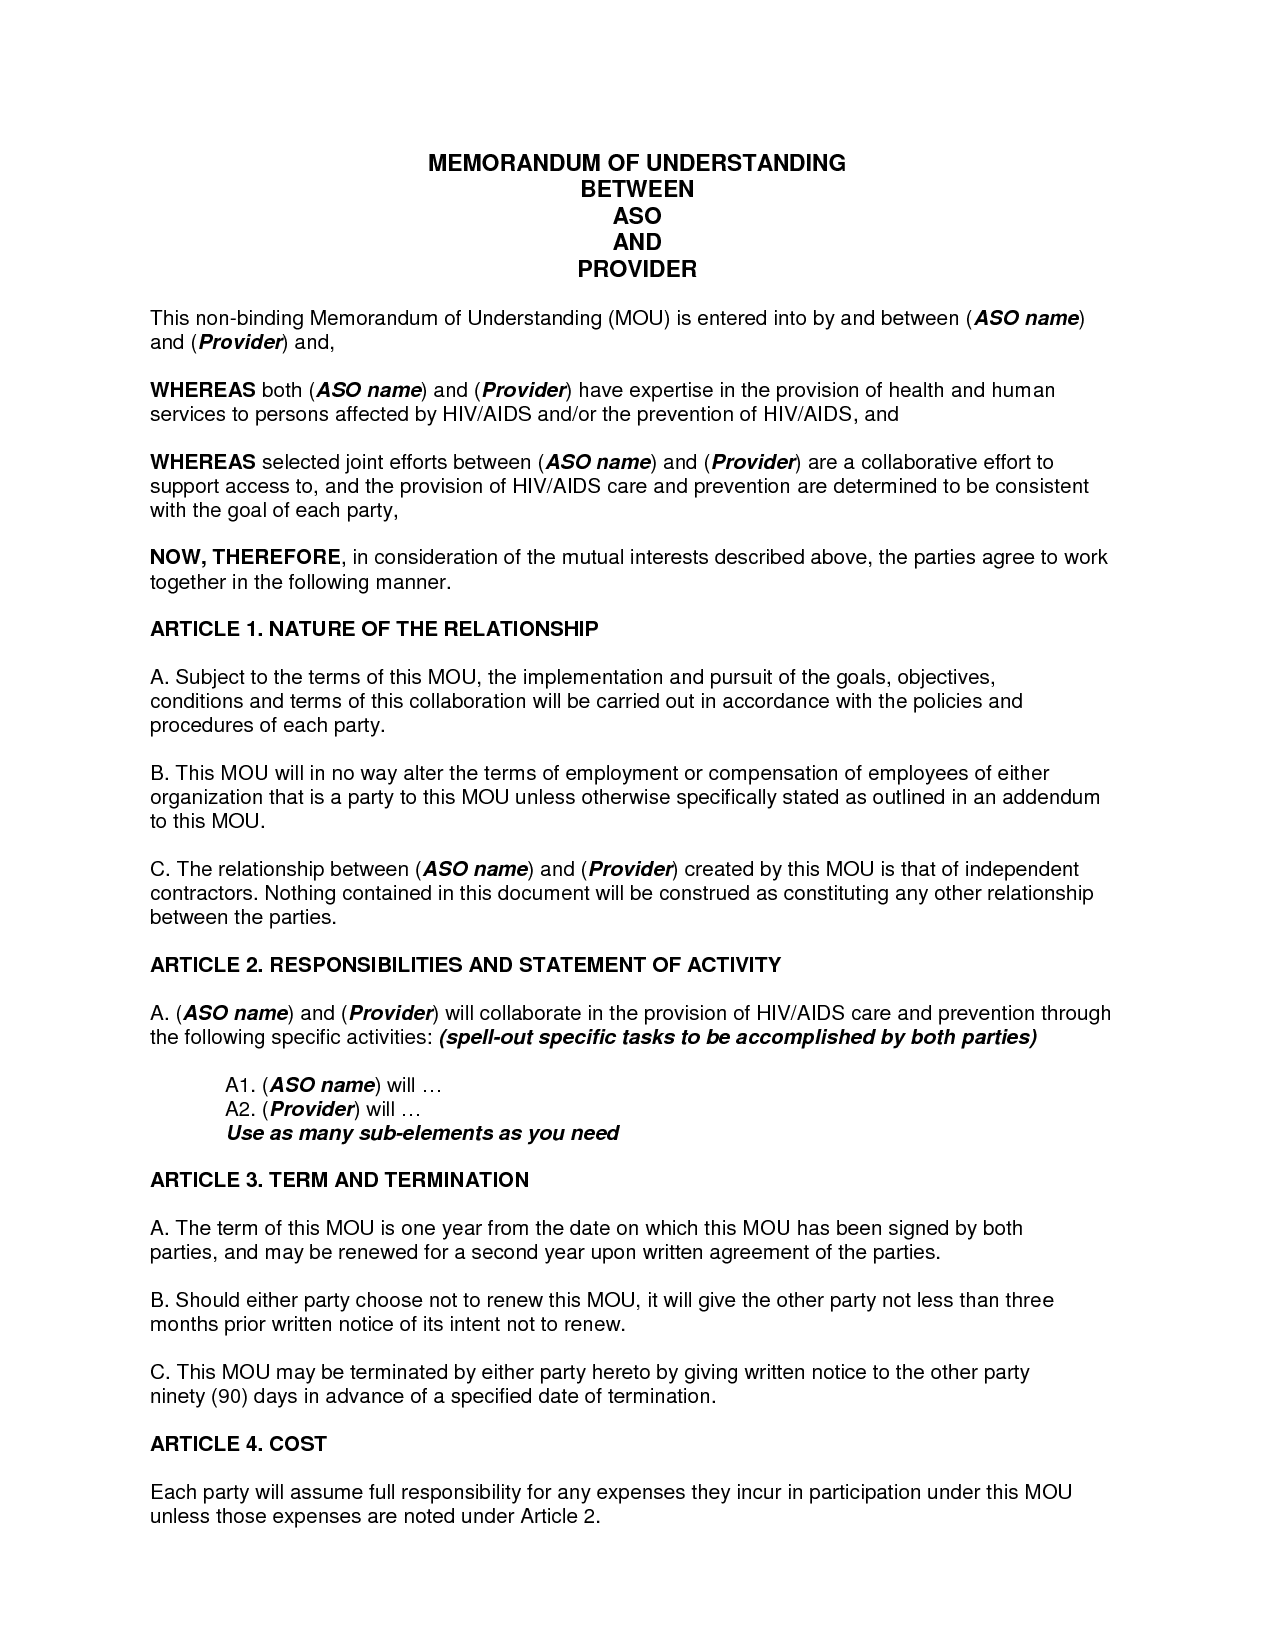 Sample memorandum of understanding business partnership doc by sample memorandum of understanding business partnership doc by m o u sample spiritdancerdesigns